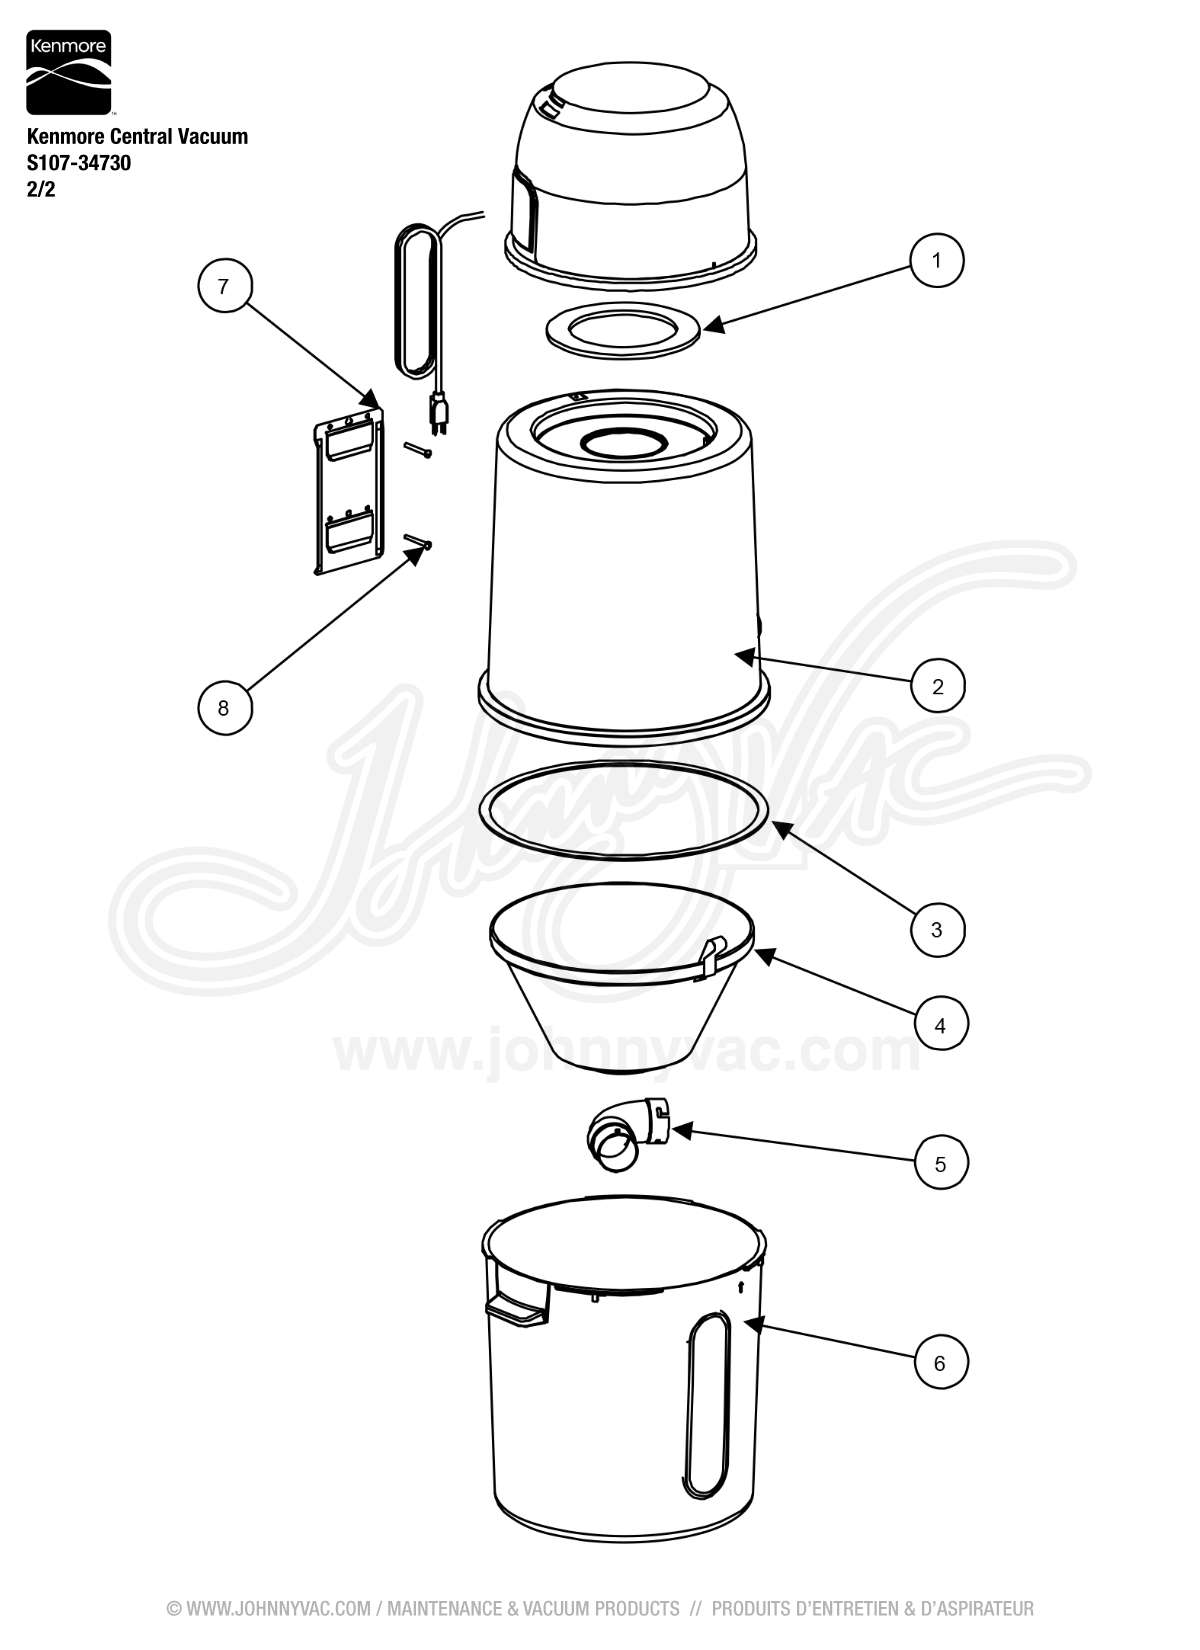 hight resolution of s107 parts diagram wiring diagramkenmore central vacuum s107 34730vacuum schematic exploded view for kenmore